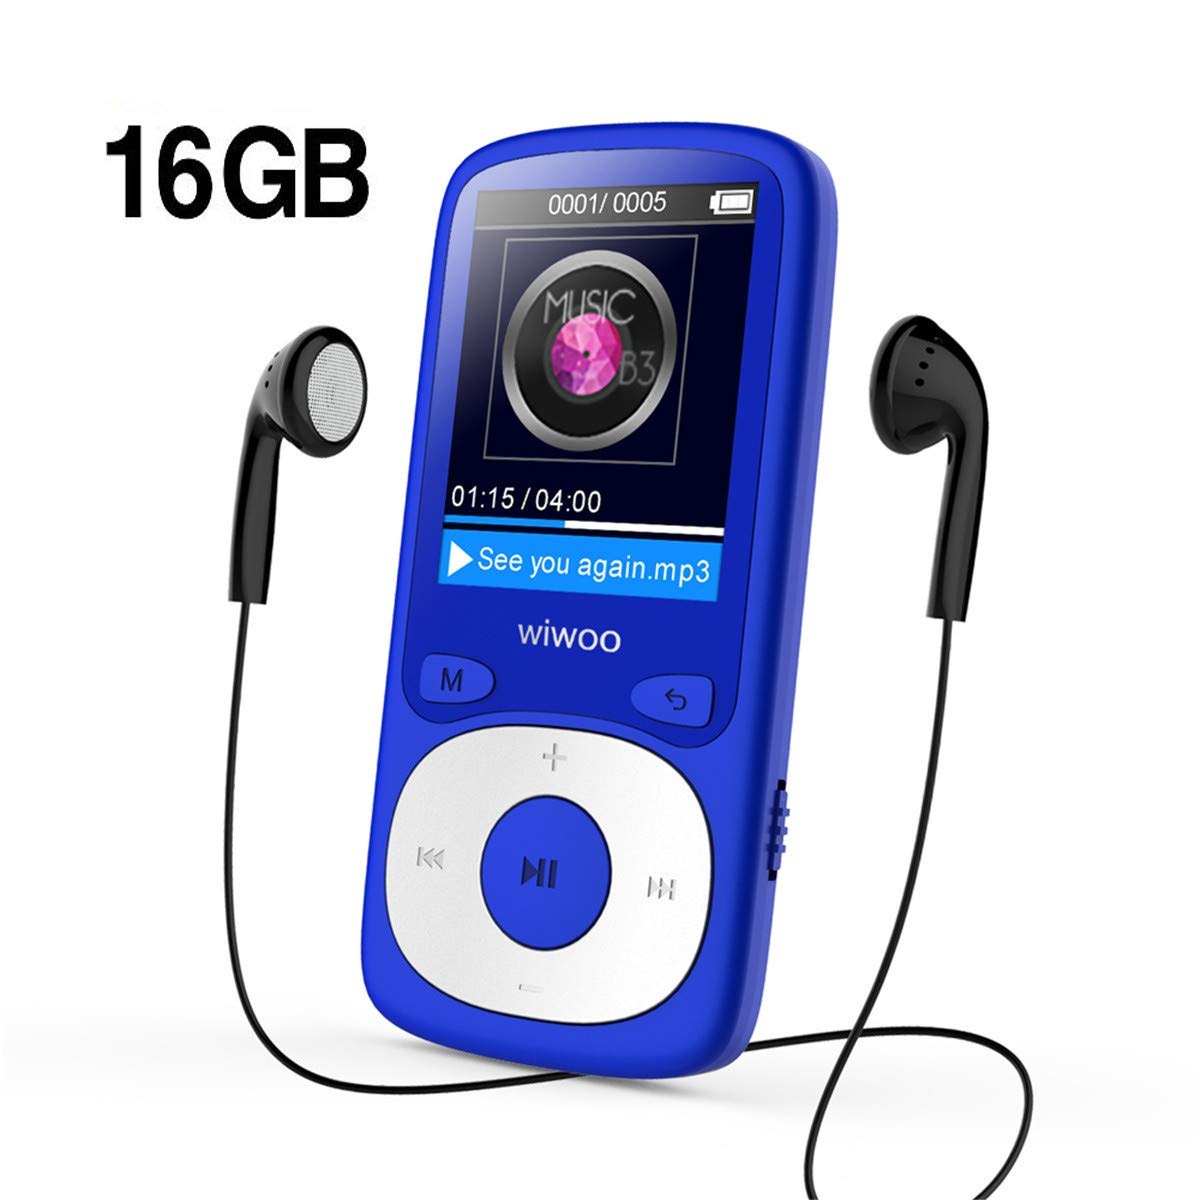 Wiwoo MP3 Player, 16GB Digital Audio Music Player with Radio/Voice  Recording, Come with Earphone Armband, Expandable Up to 64GB